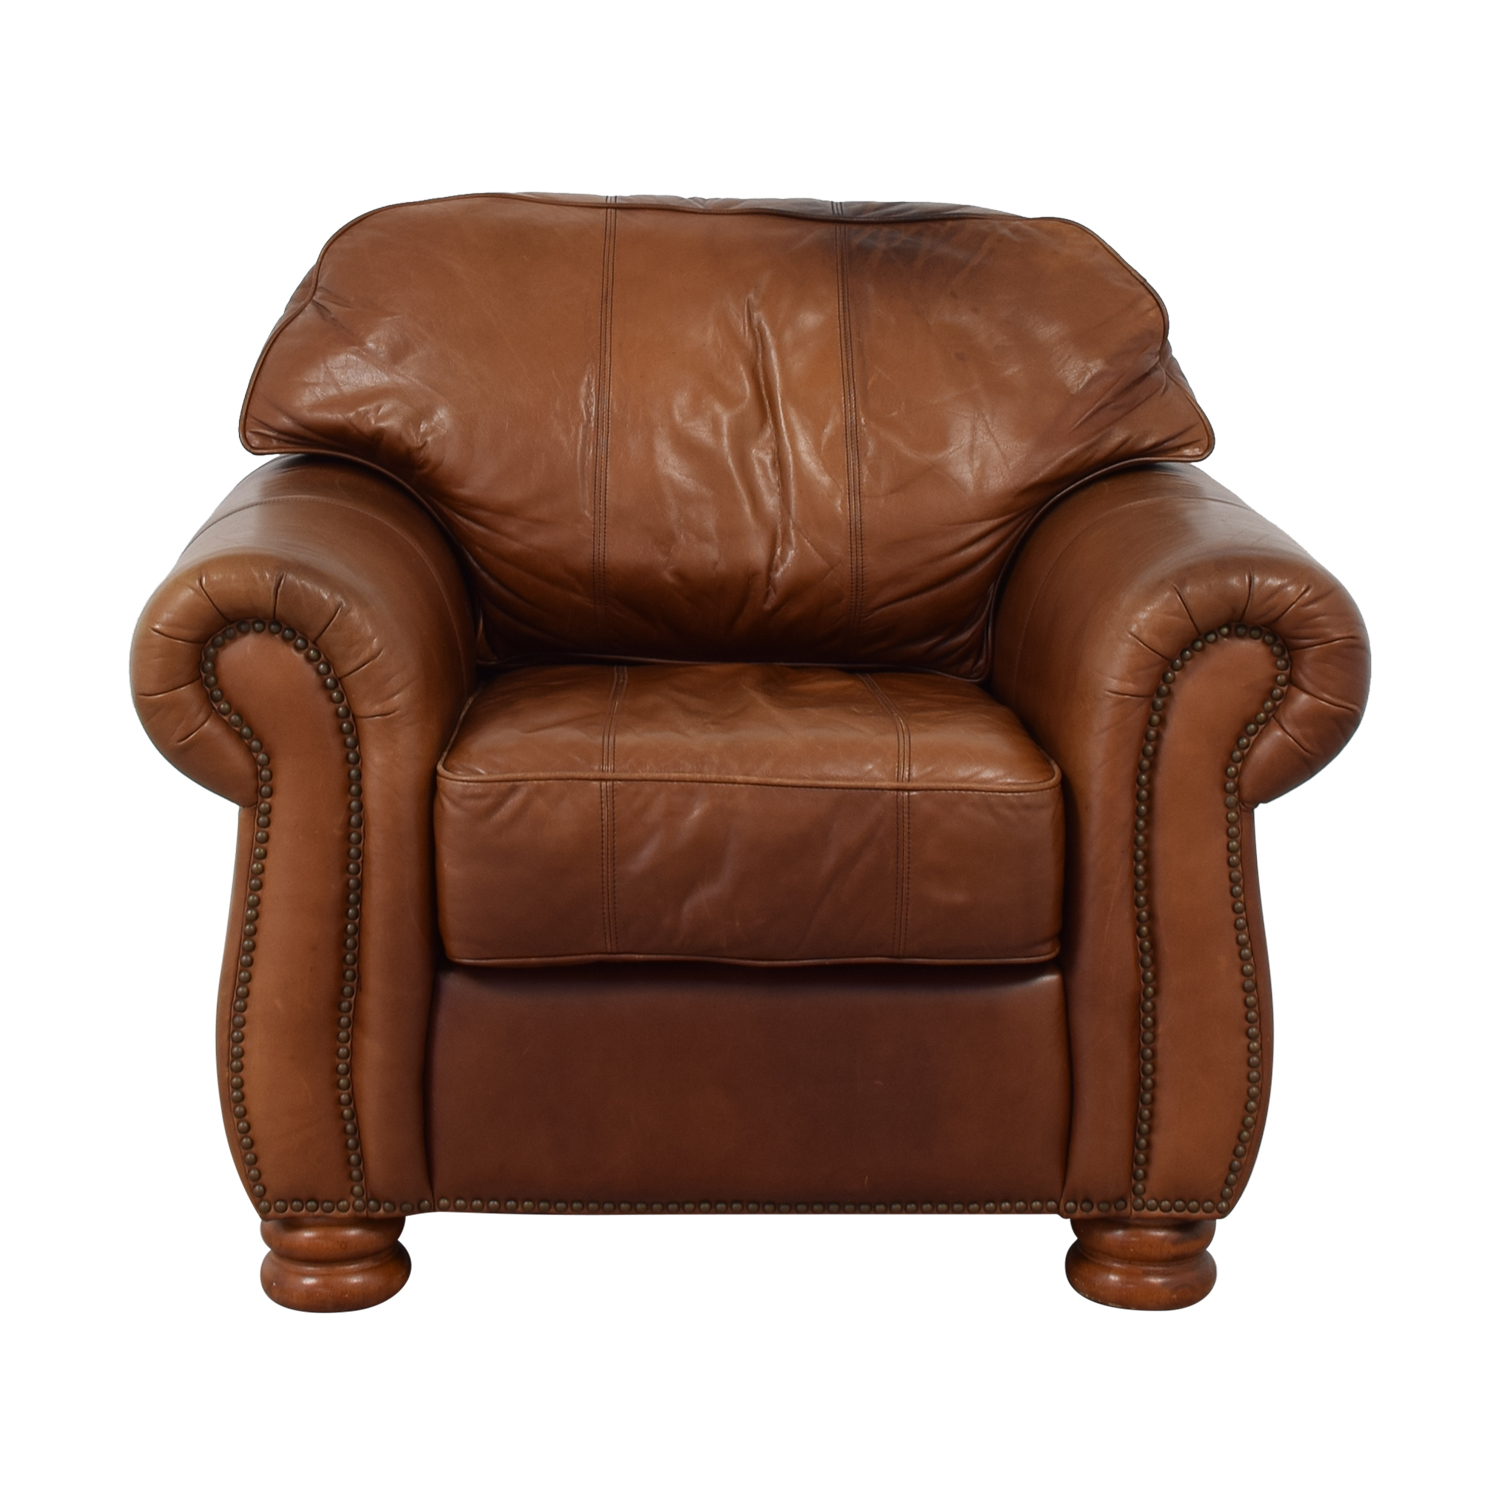 Thomasville Thomasville Leather Sofa Chair price